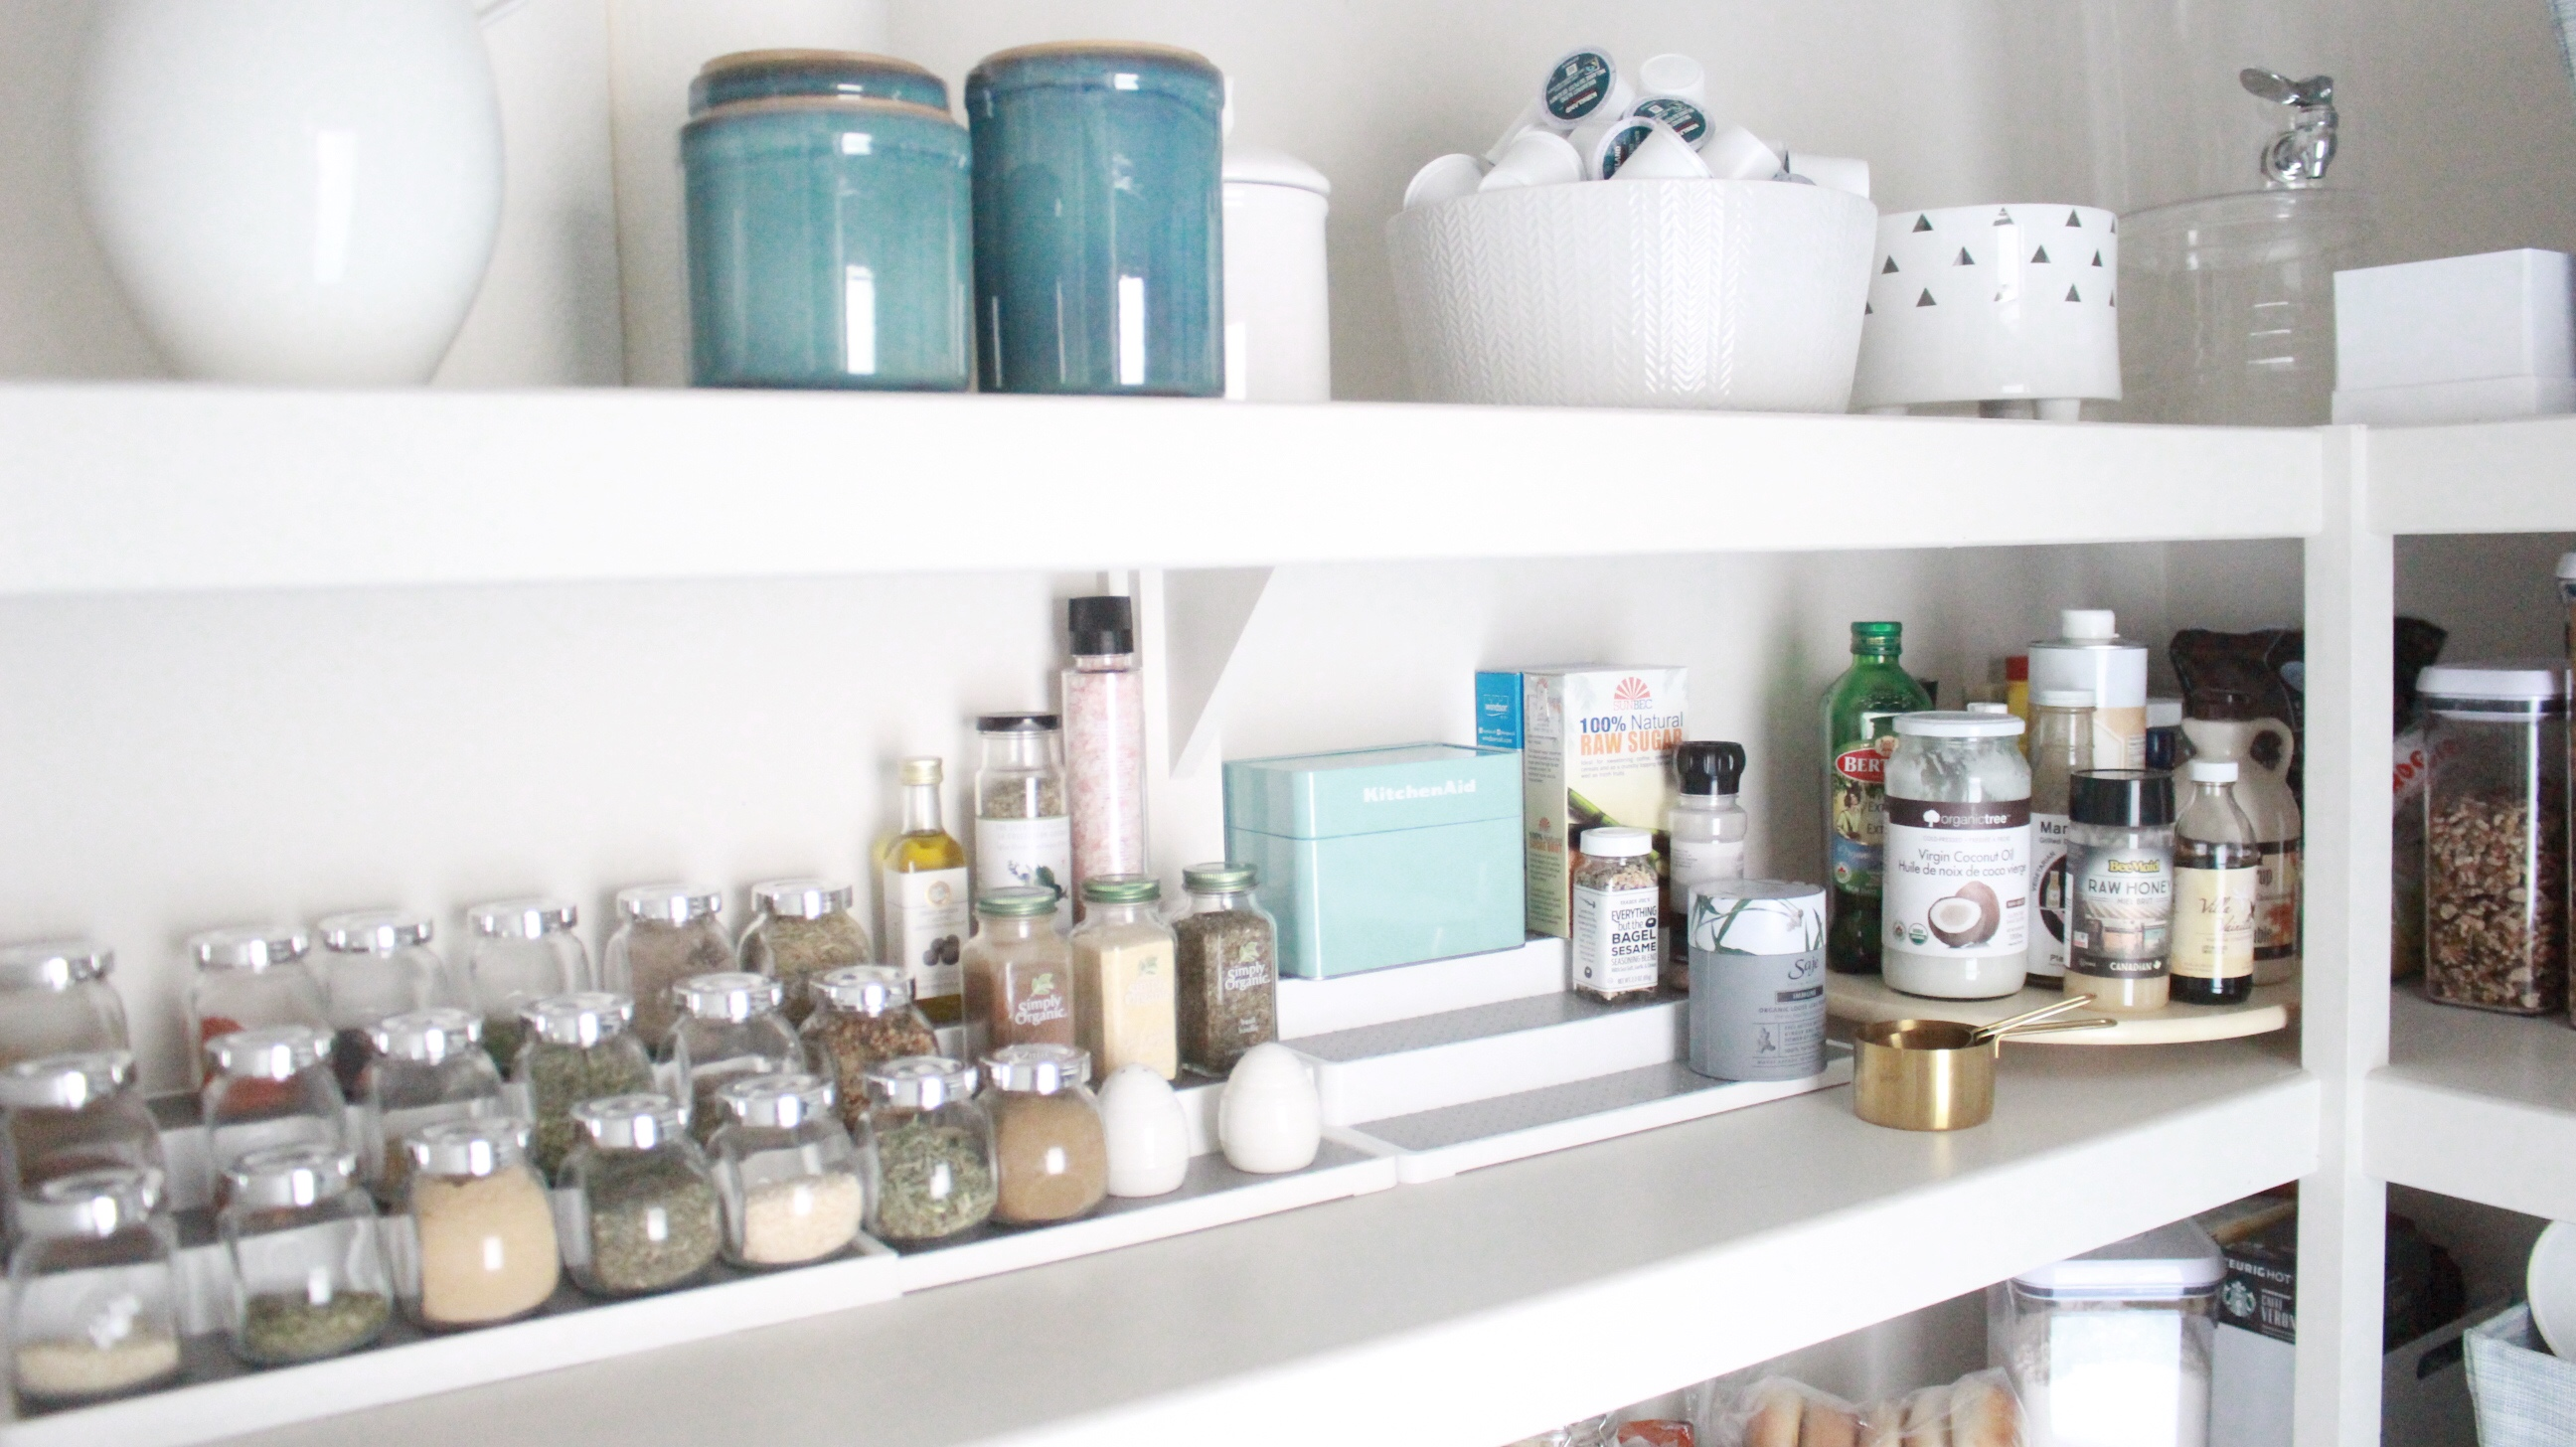 How to organize make your pantry pretty without spending a fortune i realize it helps if you actually have a decent size pantry so if you have limited space and have to use a cupboard for your pantry items some of these solutioingenieria Images